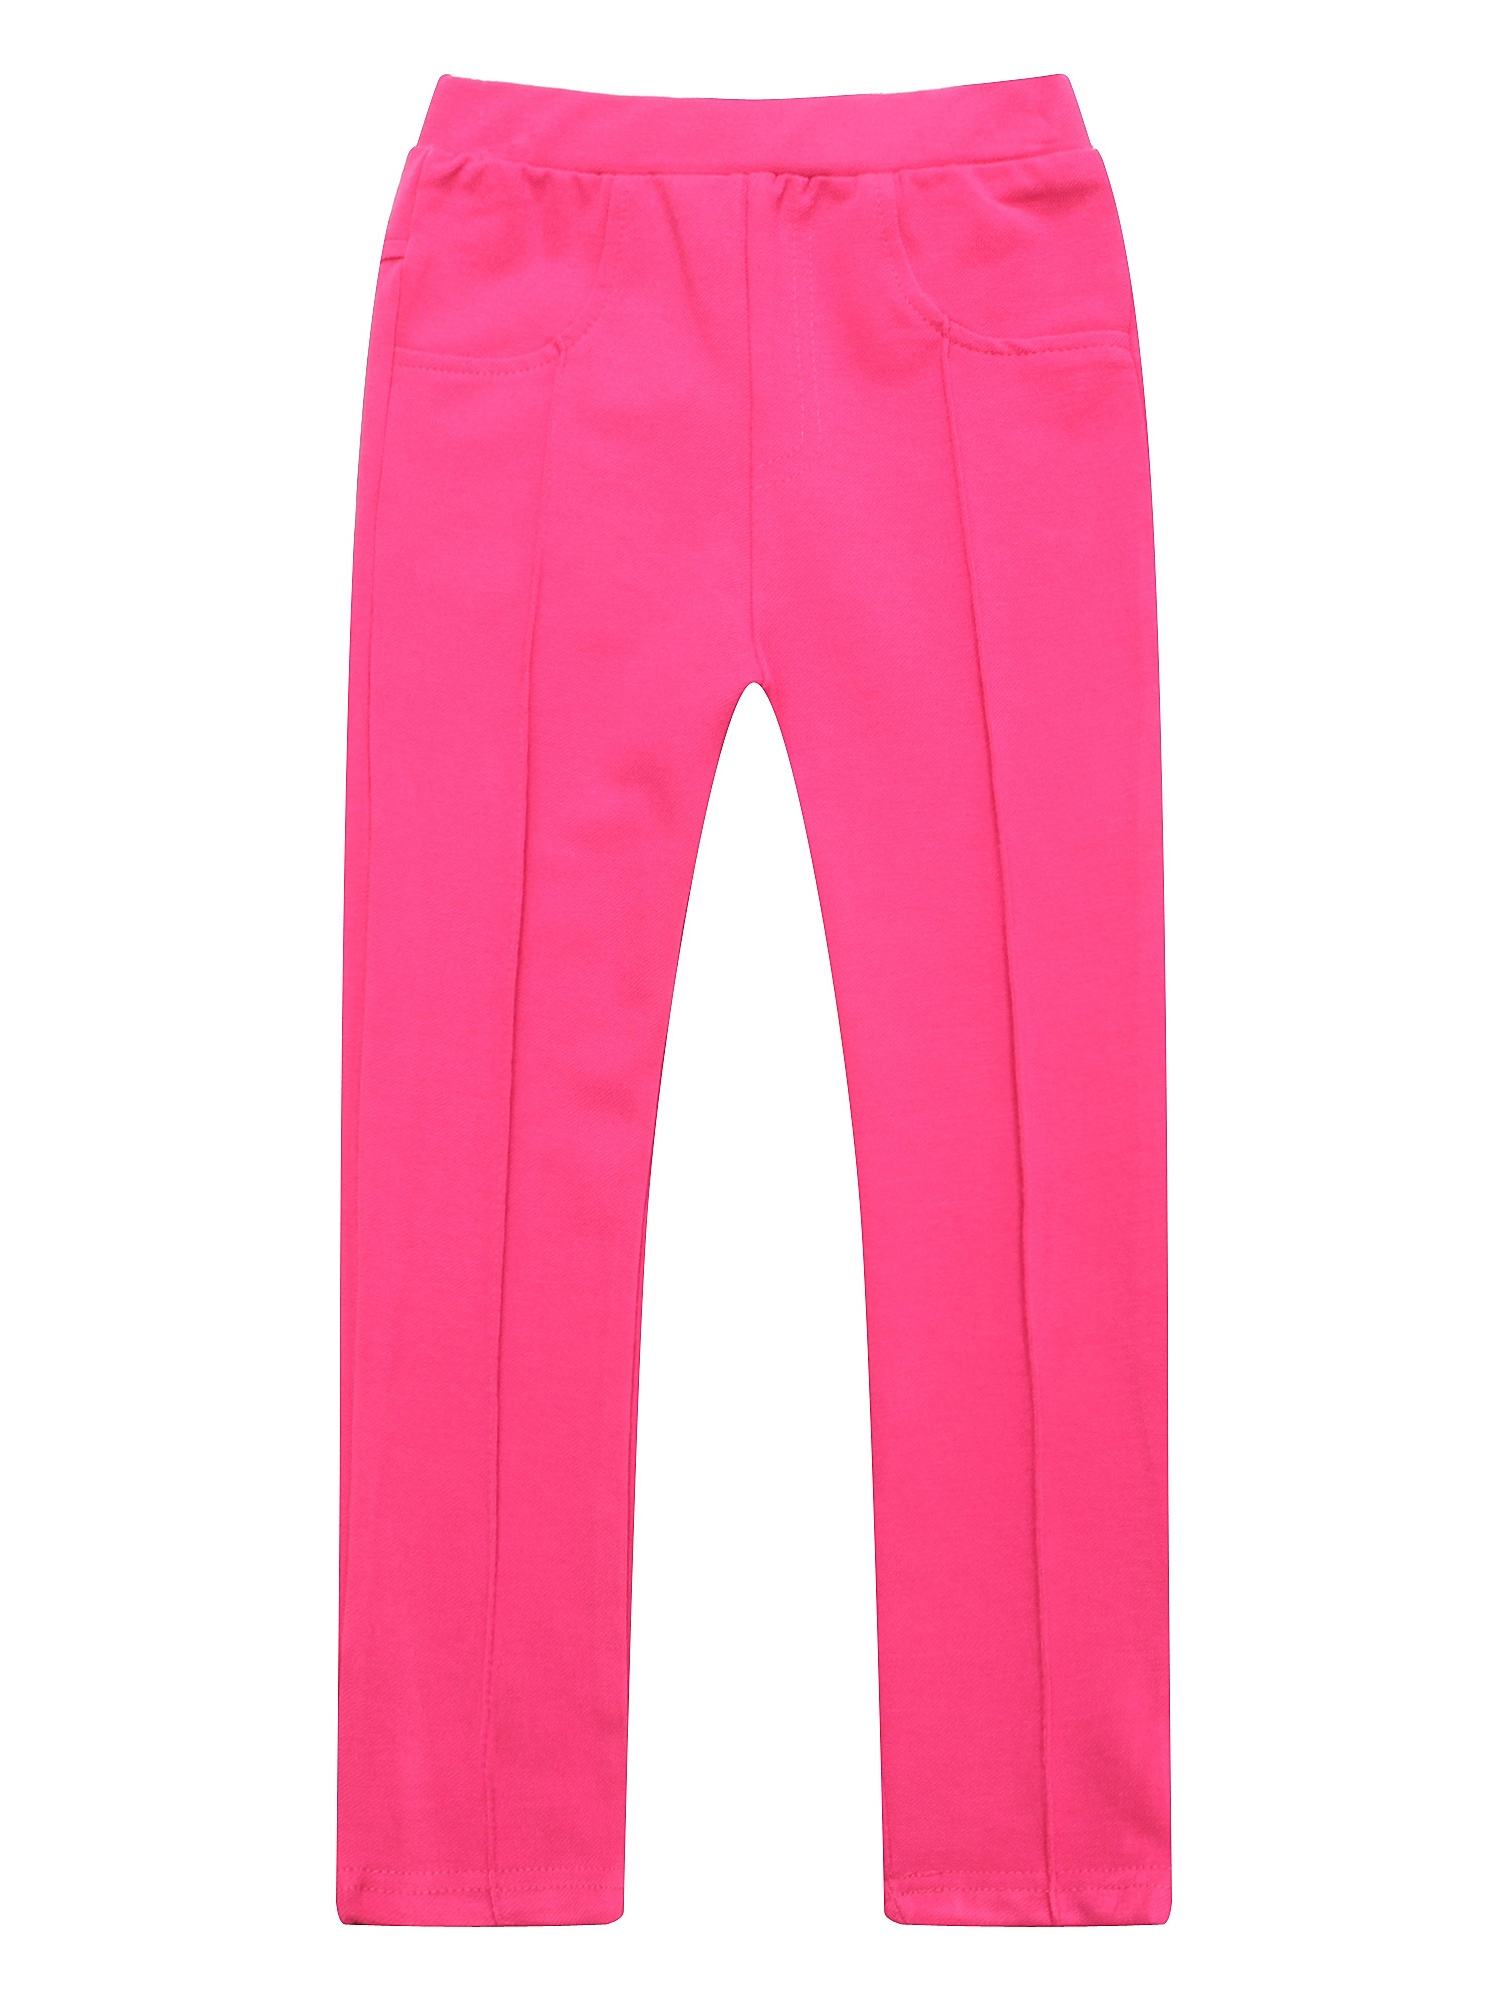 Richie House Girls' Solid Colored Pants with Elastic Waistband RH1562